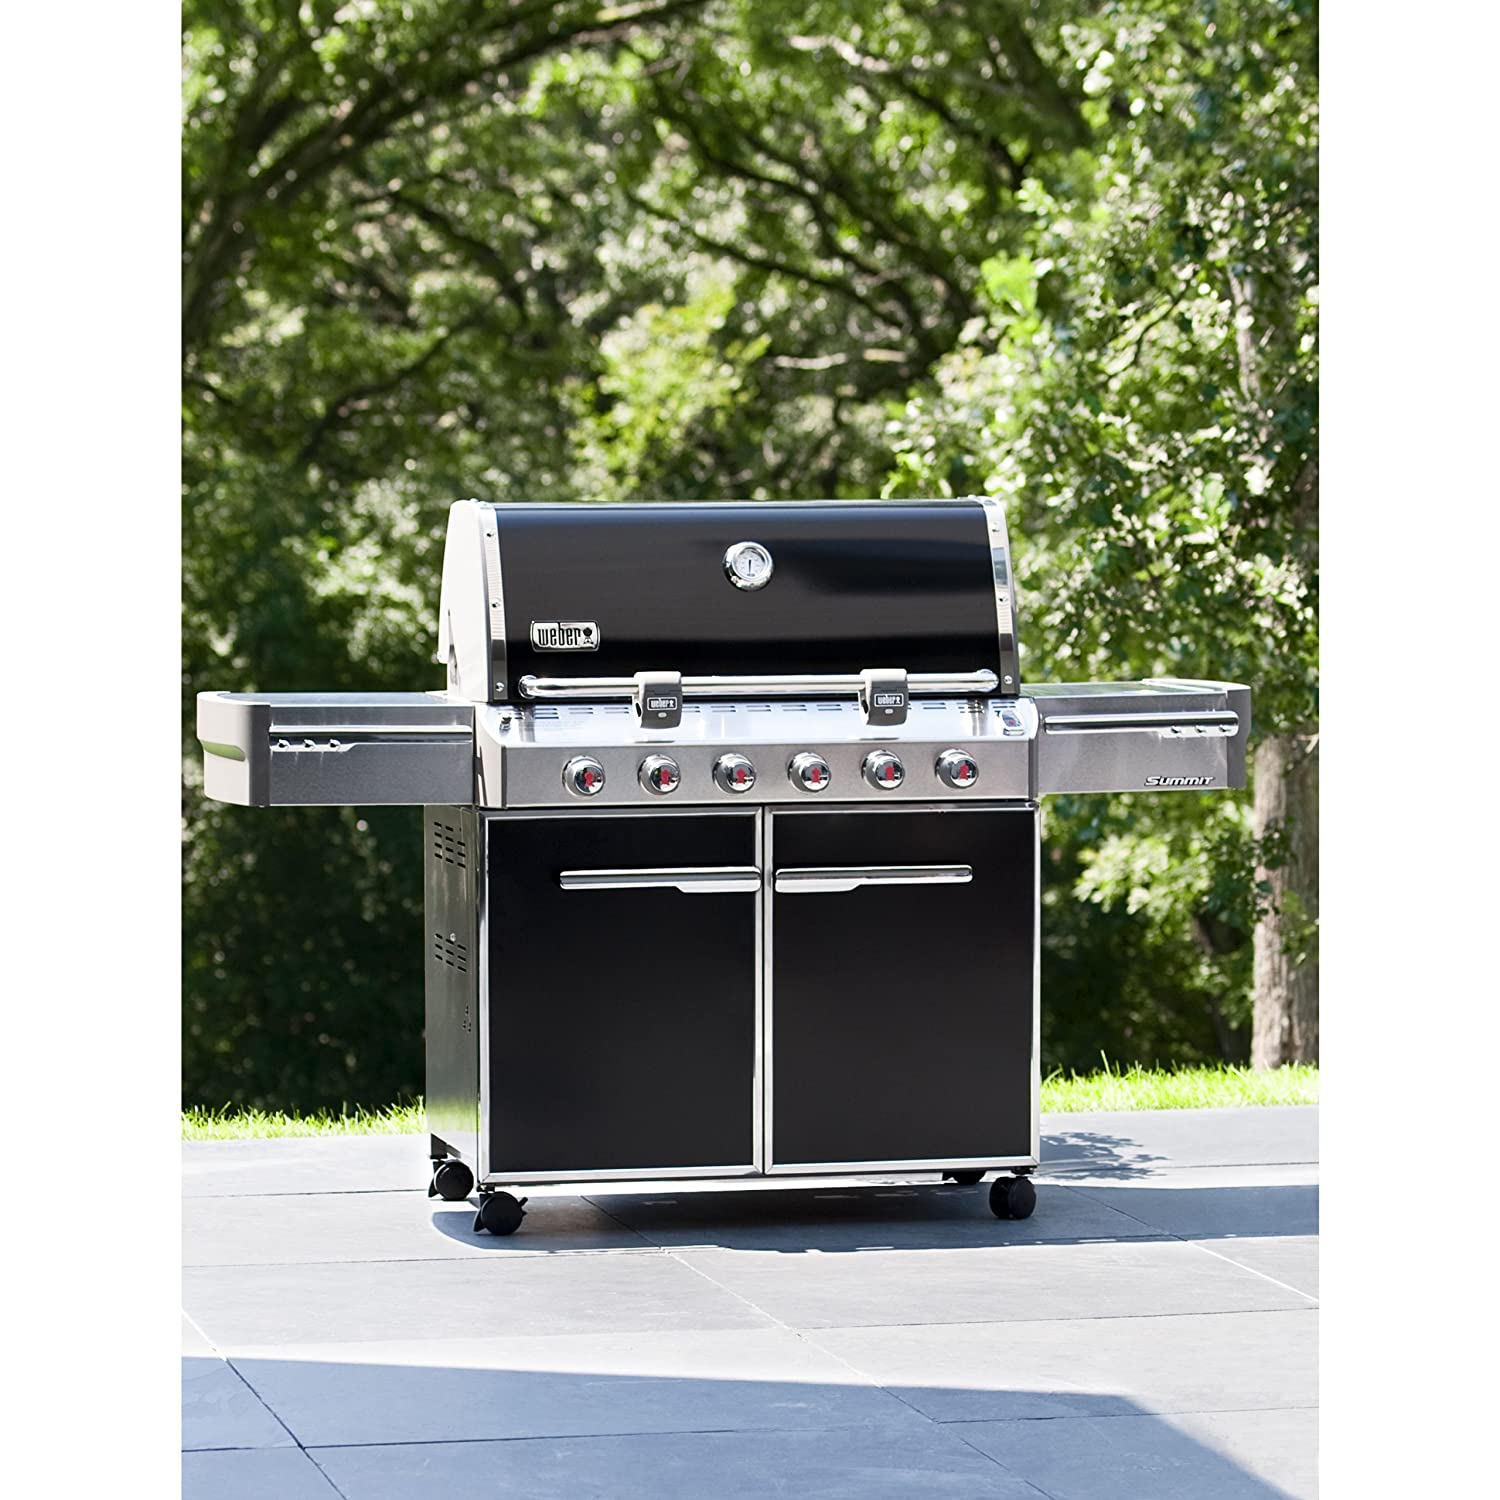 jenn air 60 000 btu 5 burner gas grill. amazon.com : weber summit 7421001 e-620 838-square-inch 60, 800-btu natural-gas grill, black freestanding grills garden \u0026 outdoor jenn air 60 000 btu 5 burner gas grill